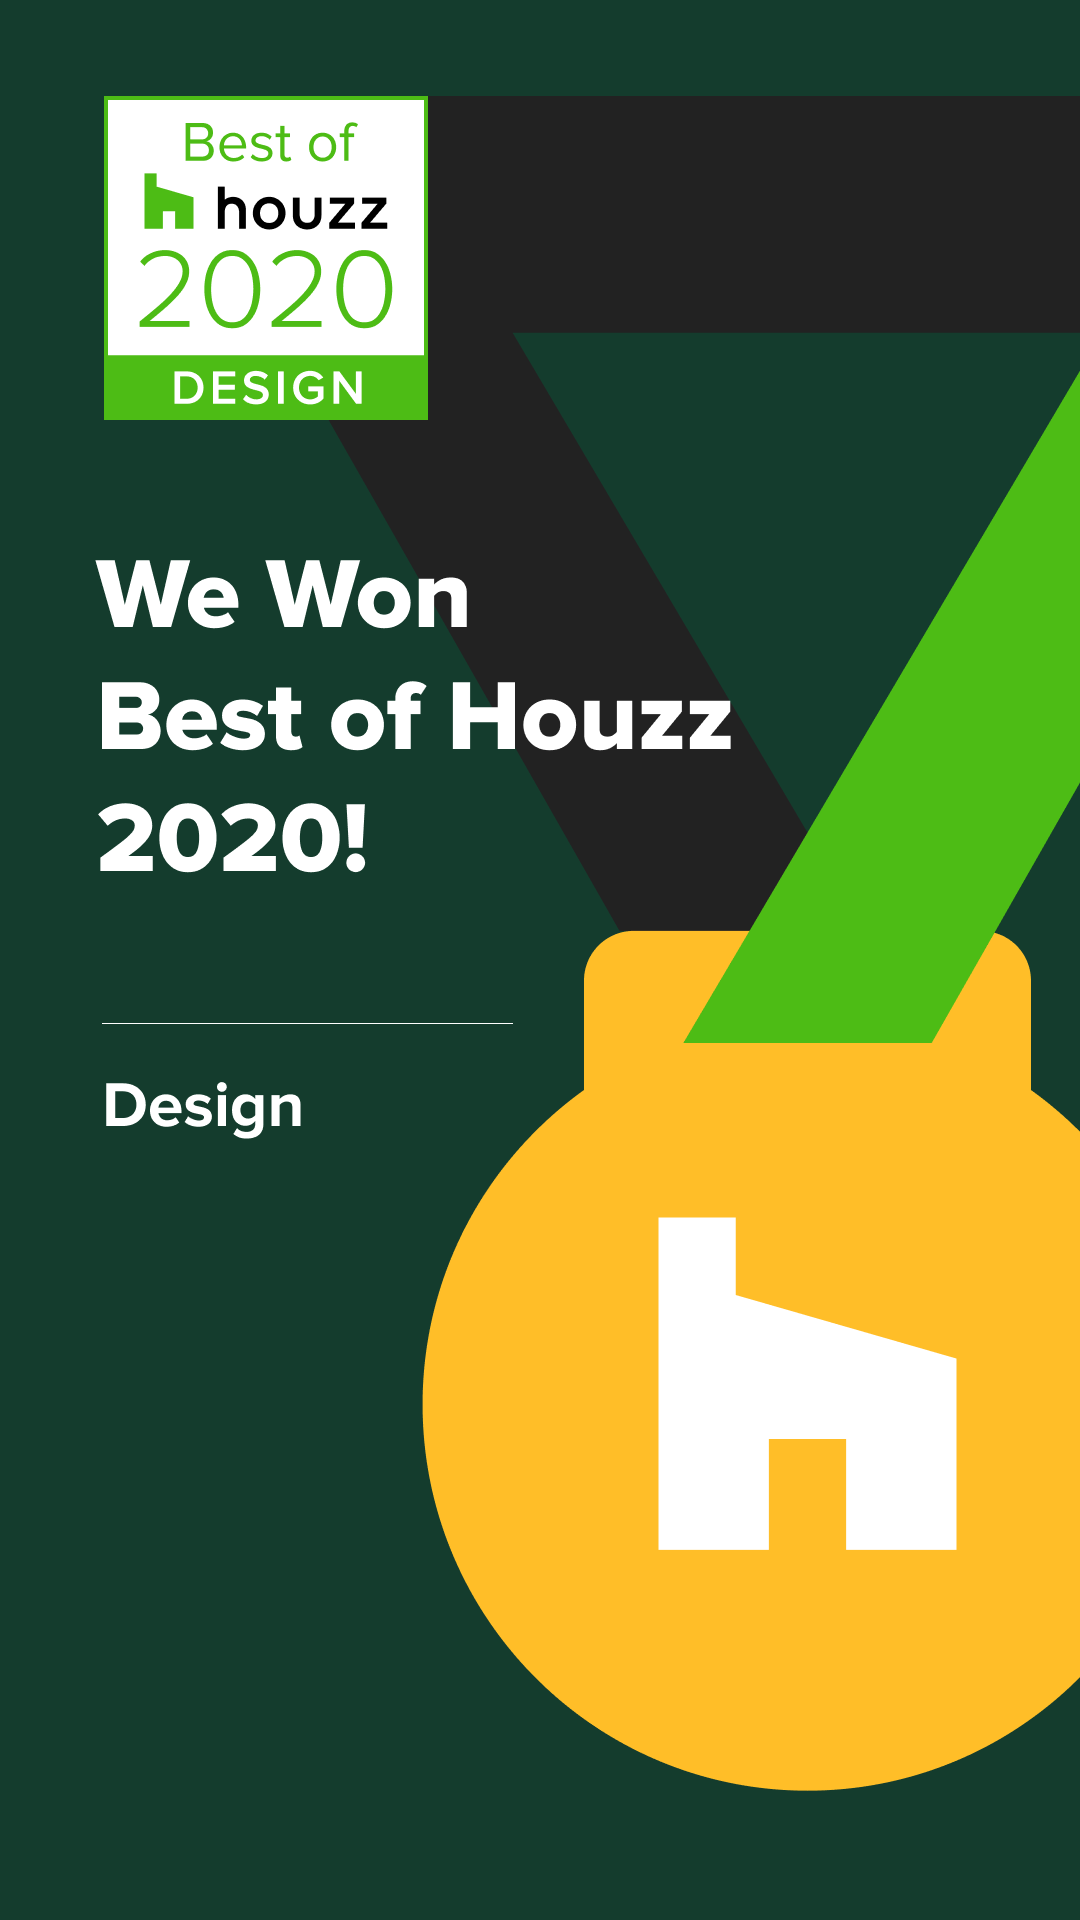 Best of Houzz Design Social Story